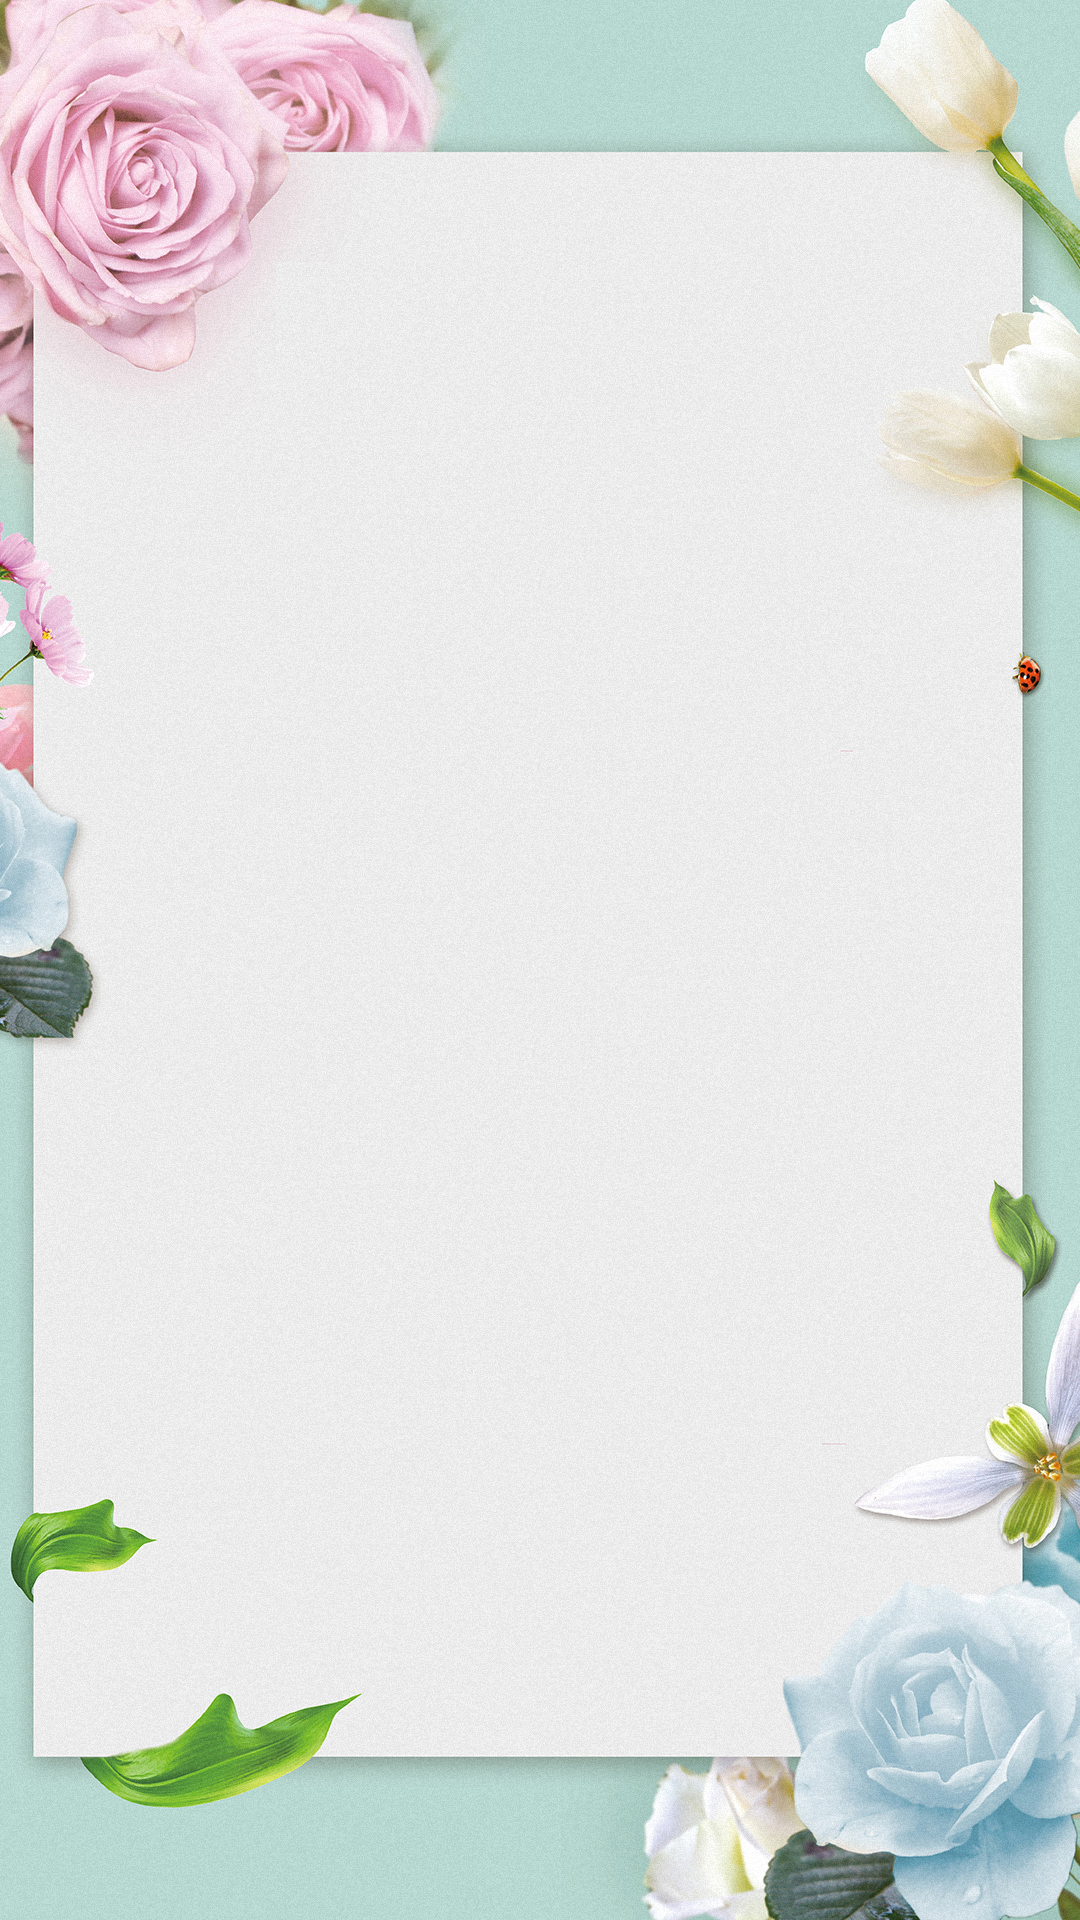 flowers border background h5  frame  flat  flowers background image for free download